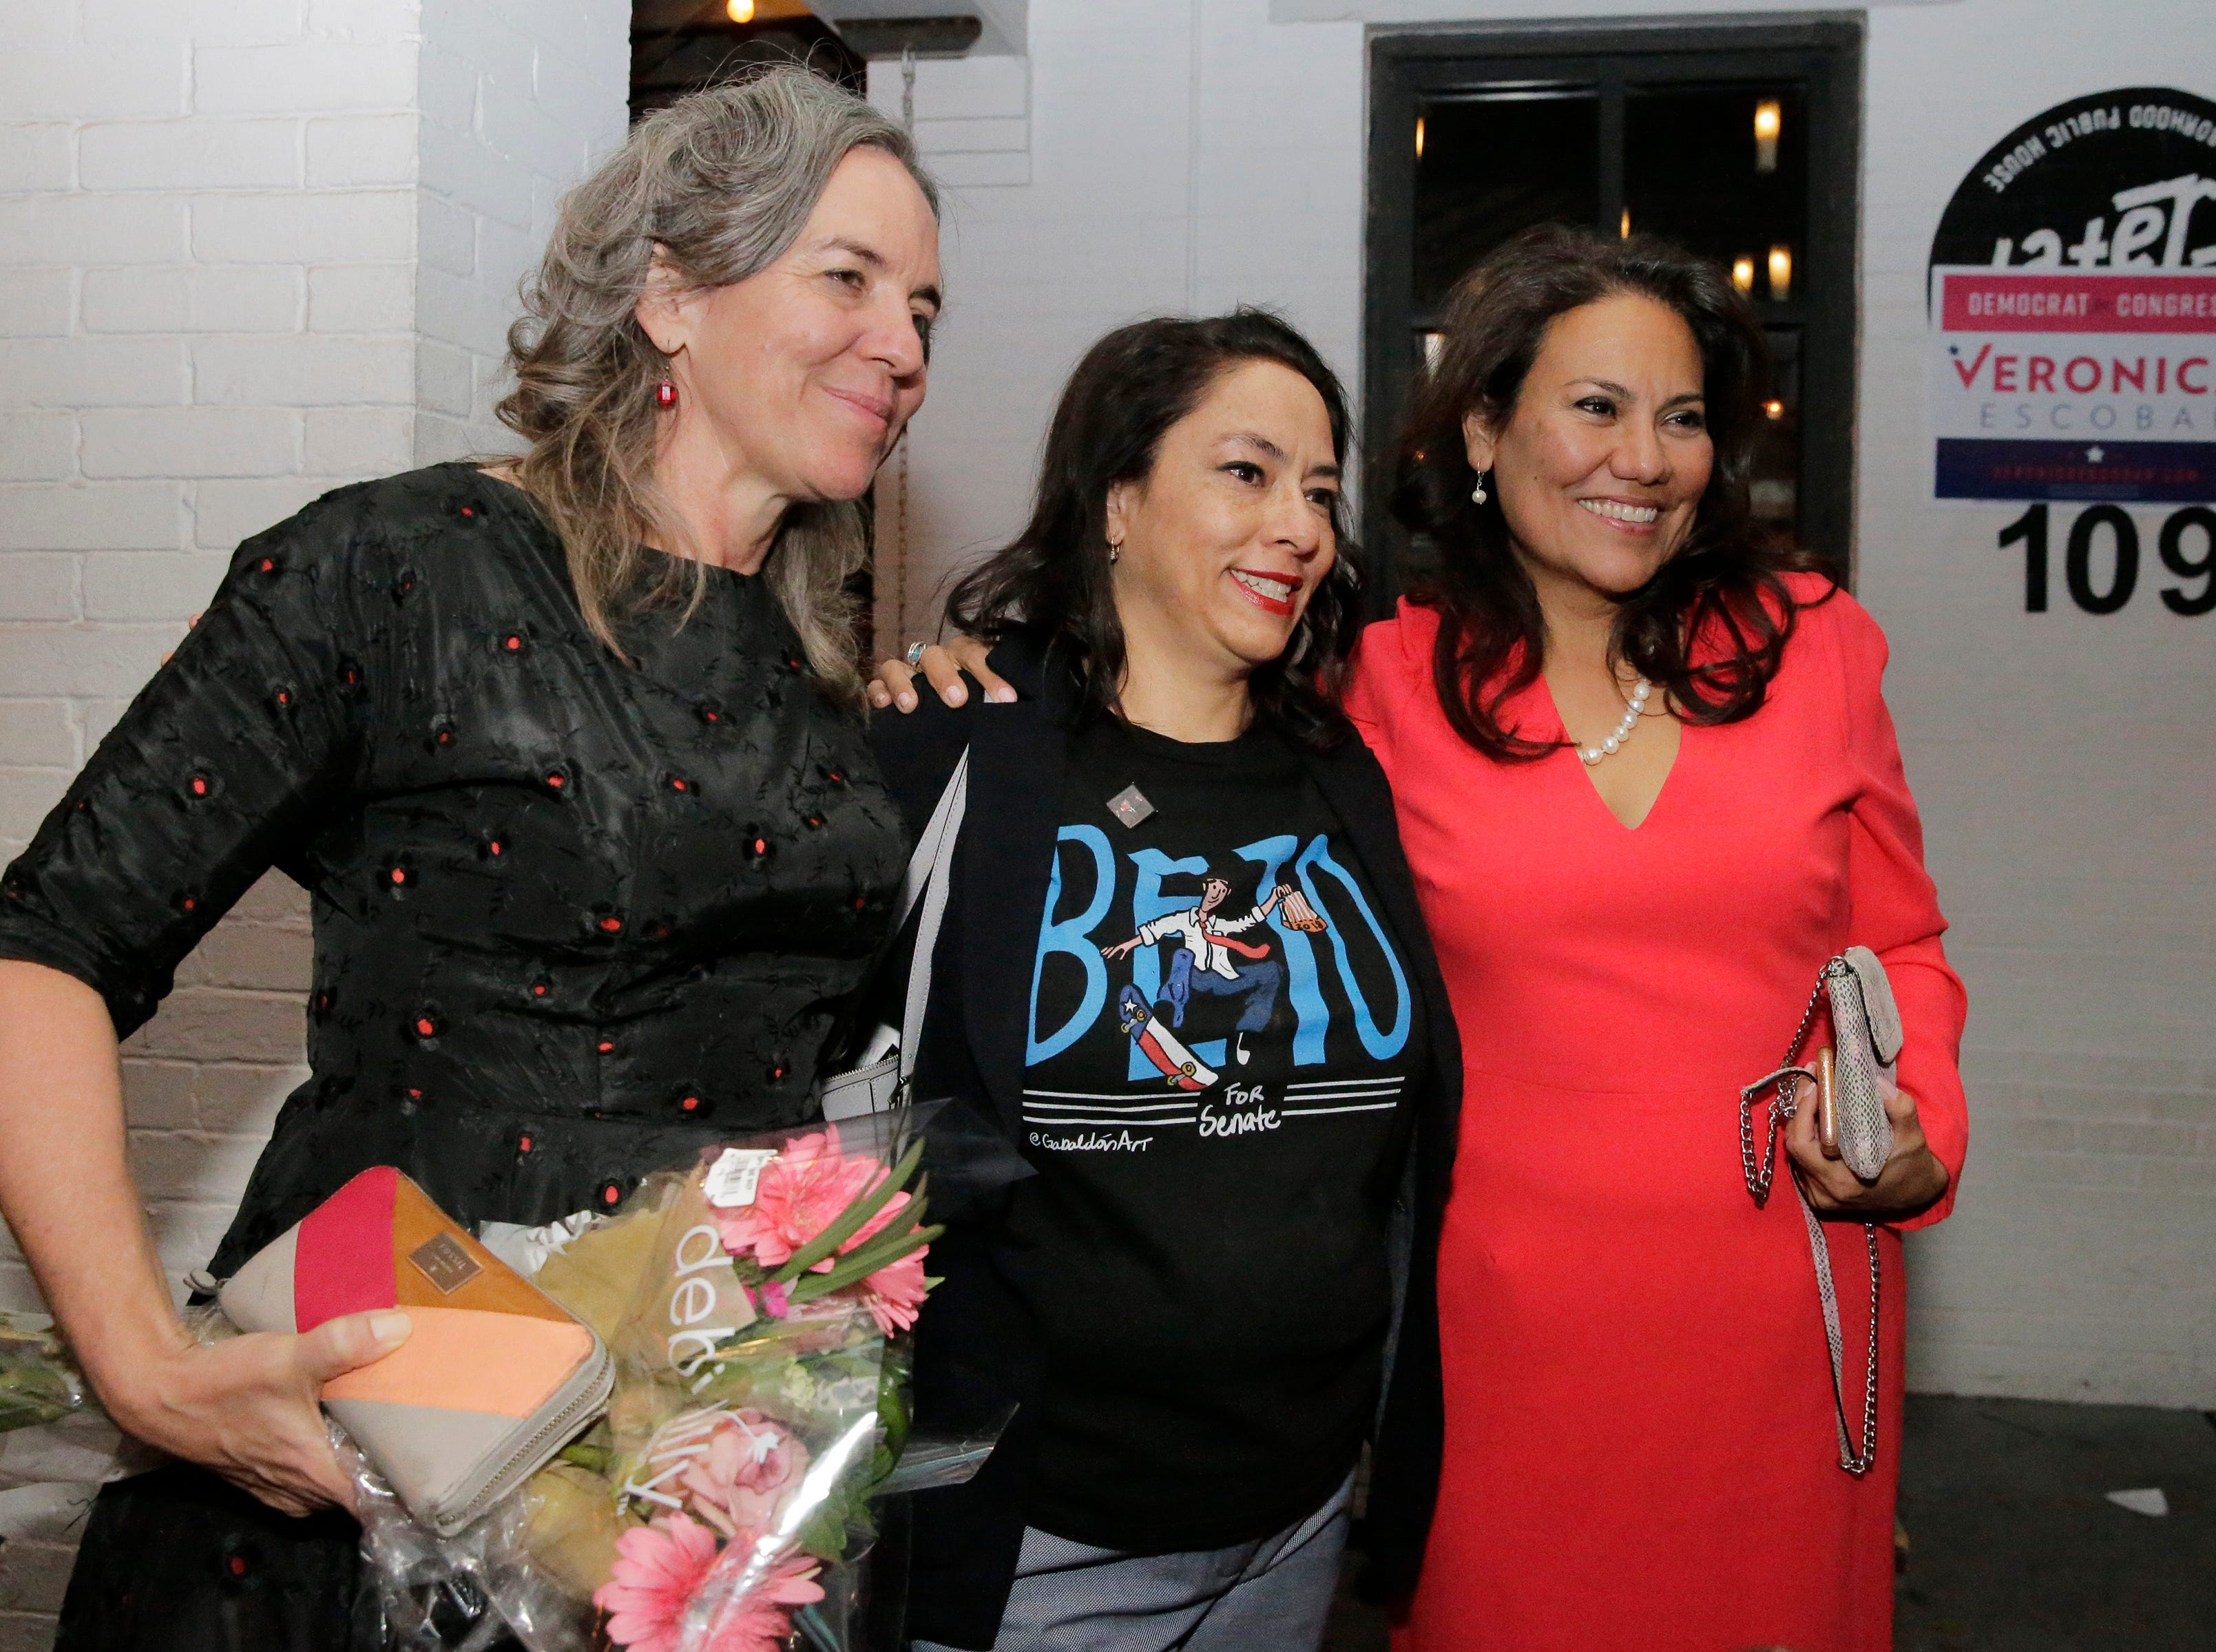 U.S. Rep.-elect Veronica Escobar and Susie Byrd celebrated with supporters at Later Later in Downtown El Paso. She will be one of the first Latinas from Texas in Congress.